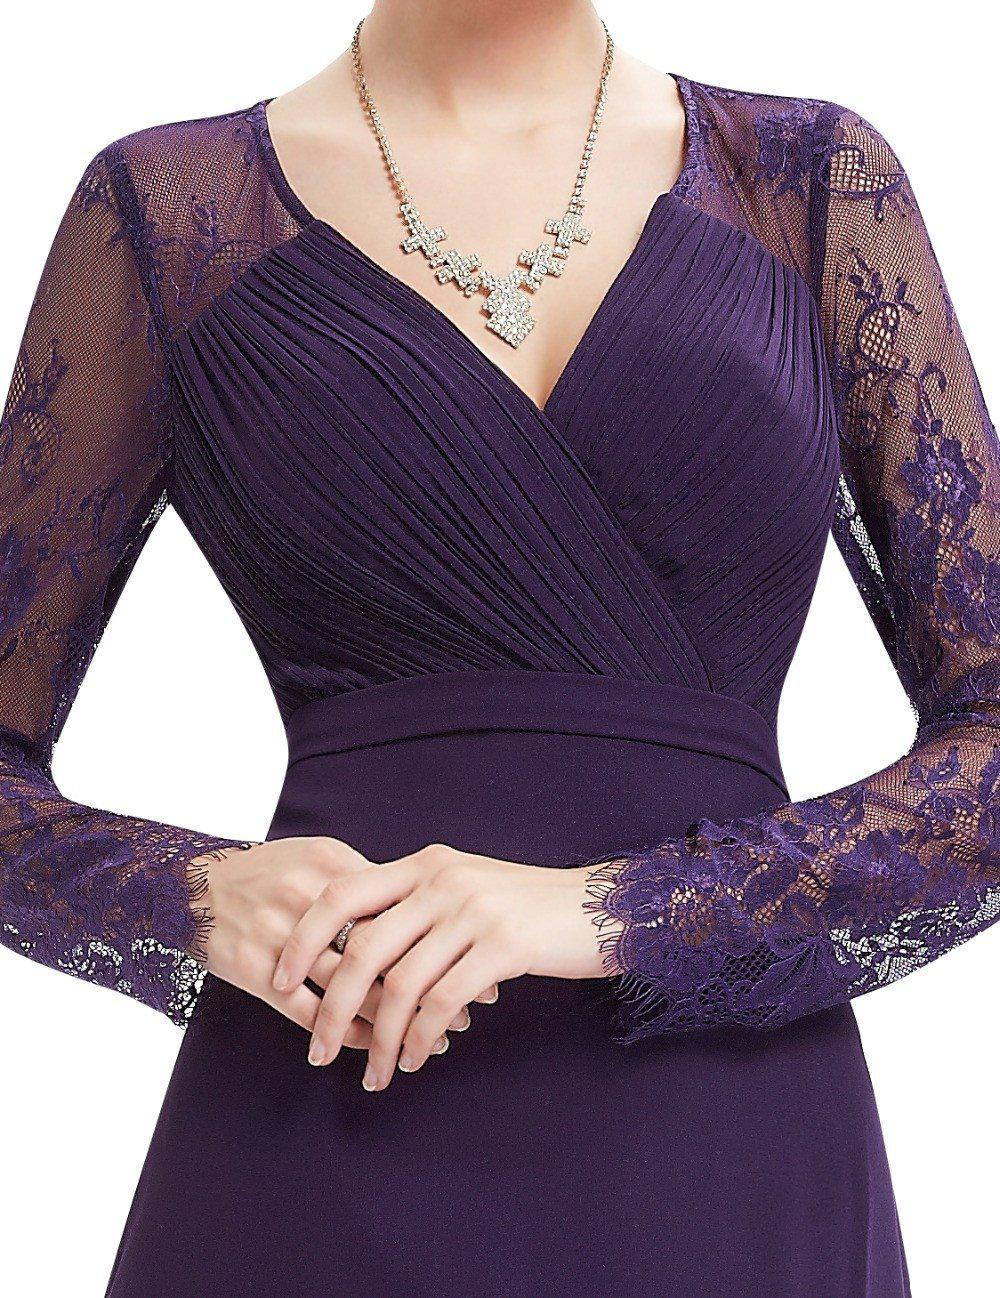 Formal Evening Dresses Women's Elegant V-neck Long Sleeve Lace Evening Dress-Dress-SheSimplyShops